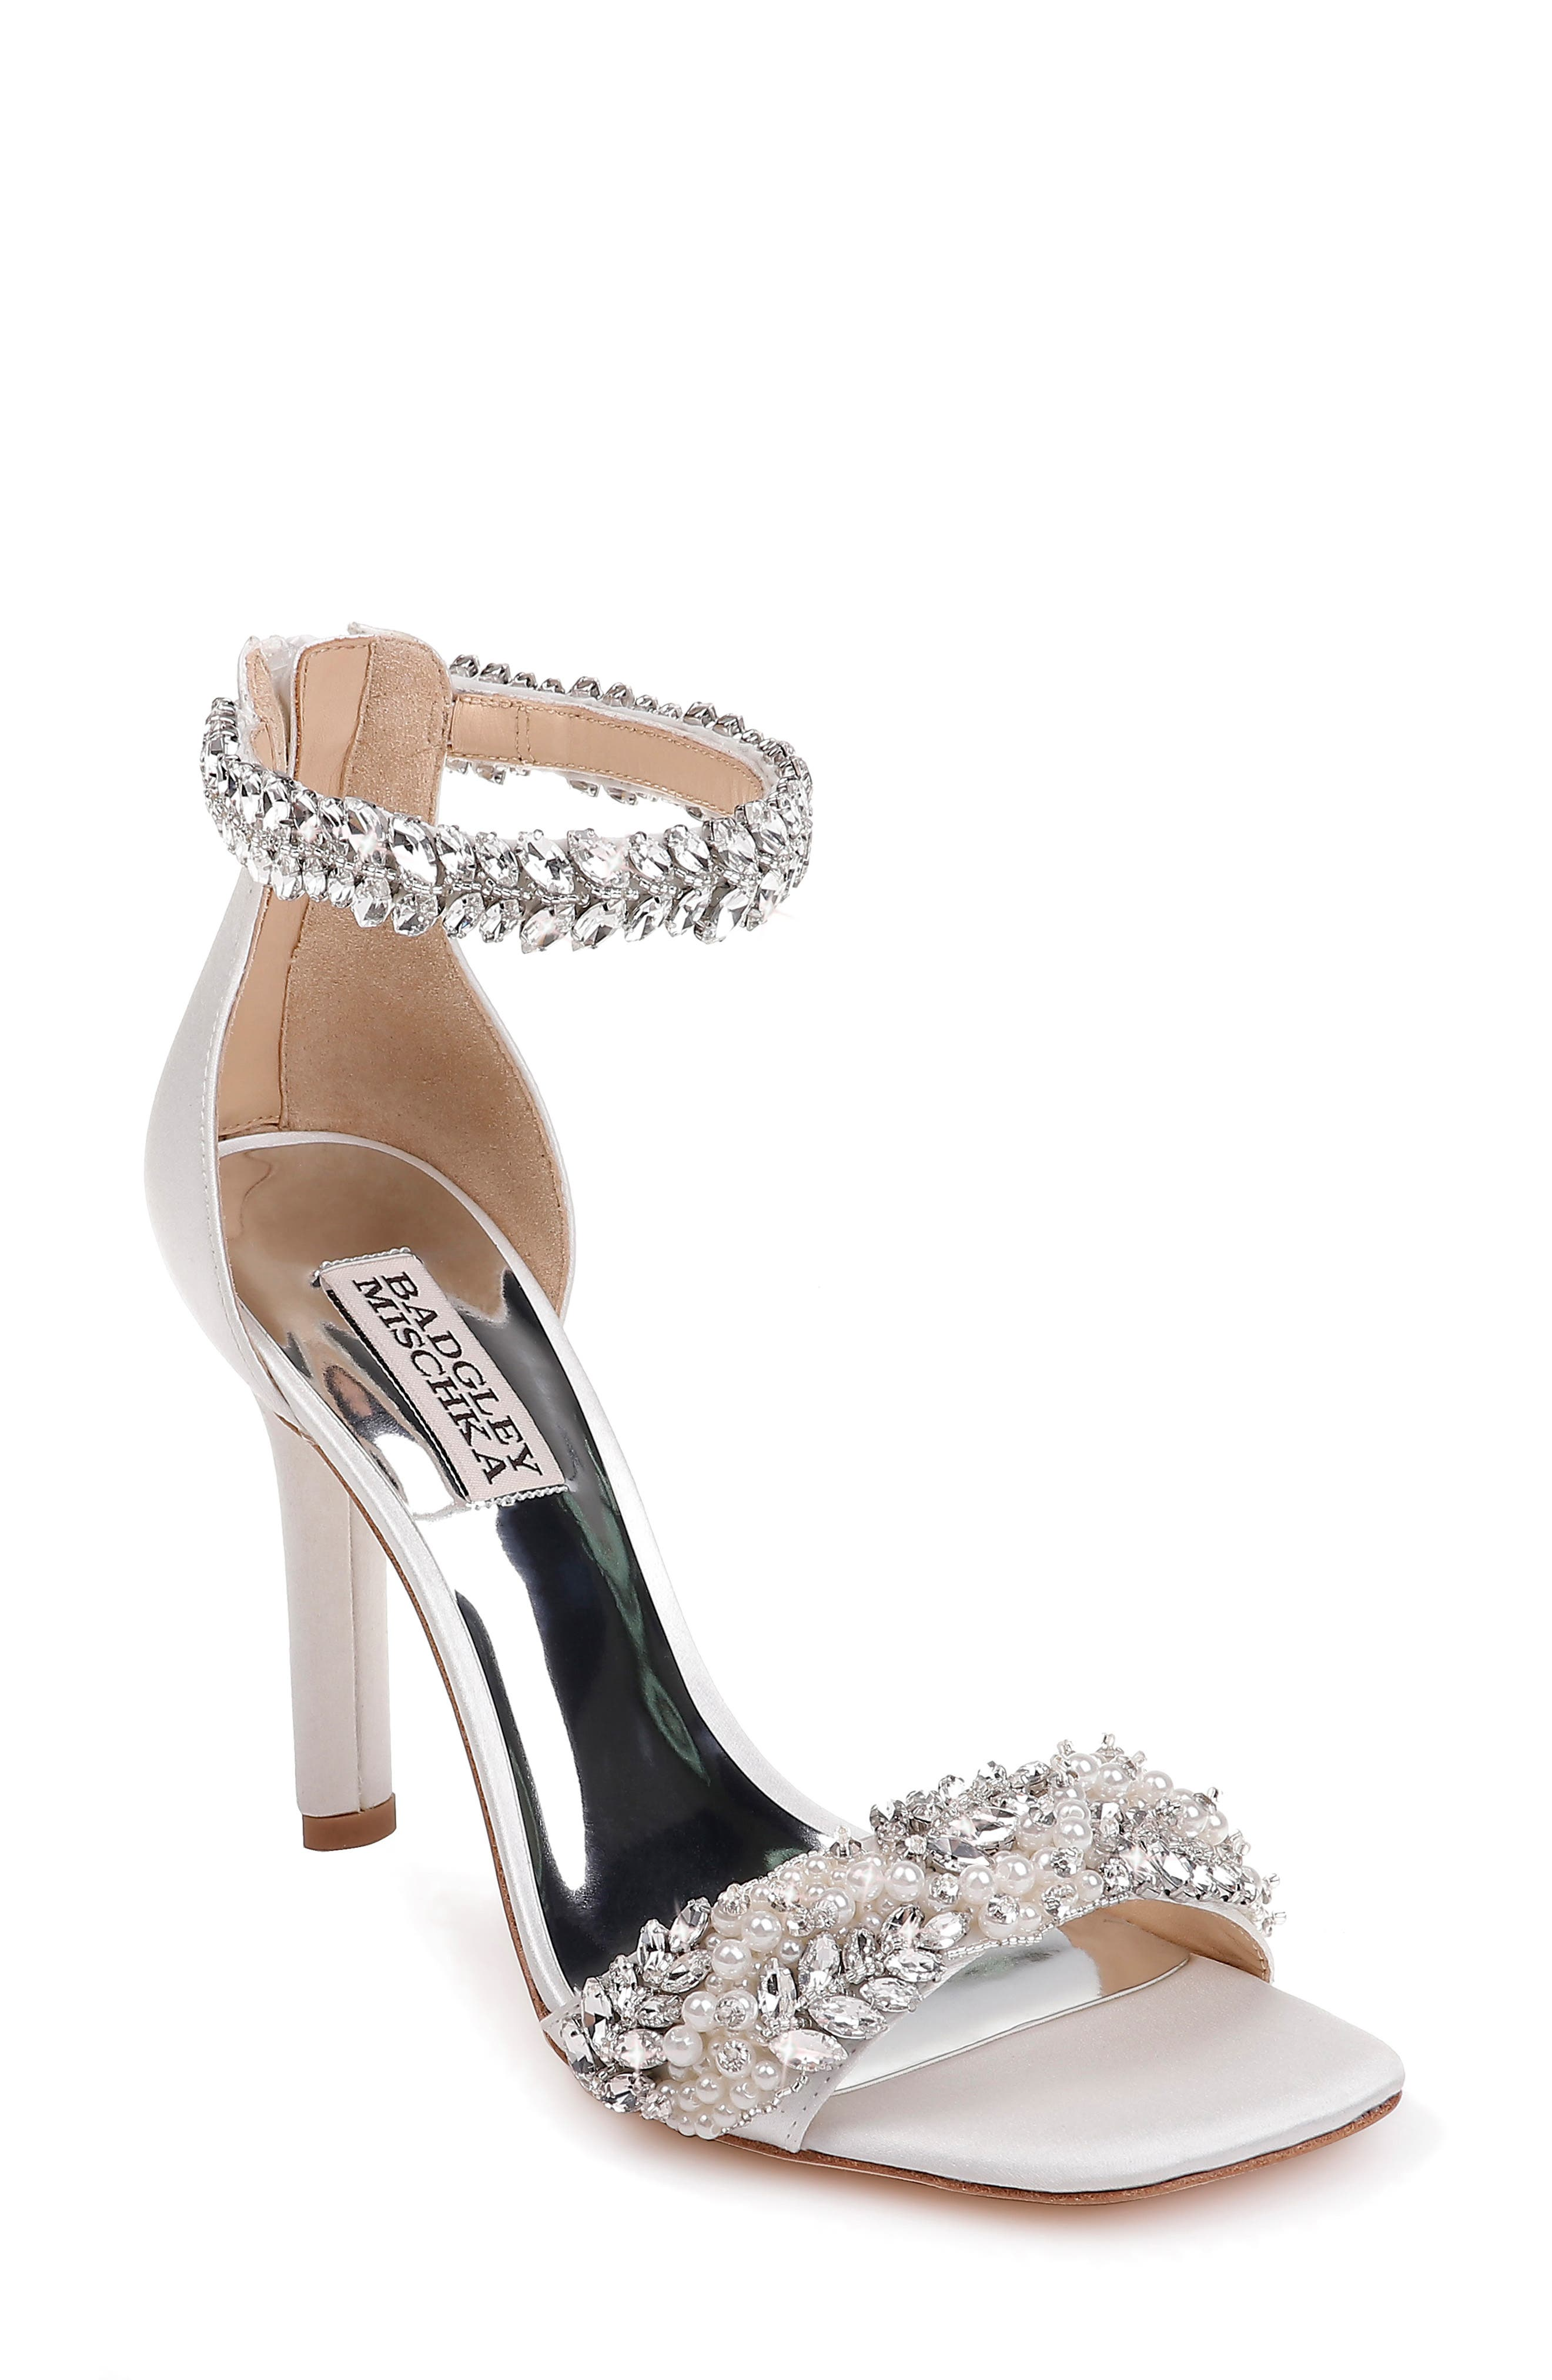 Badgley Mischka Fiorenza Crystal & Imitation Pearl Embellished Sandal- White